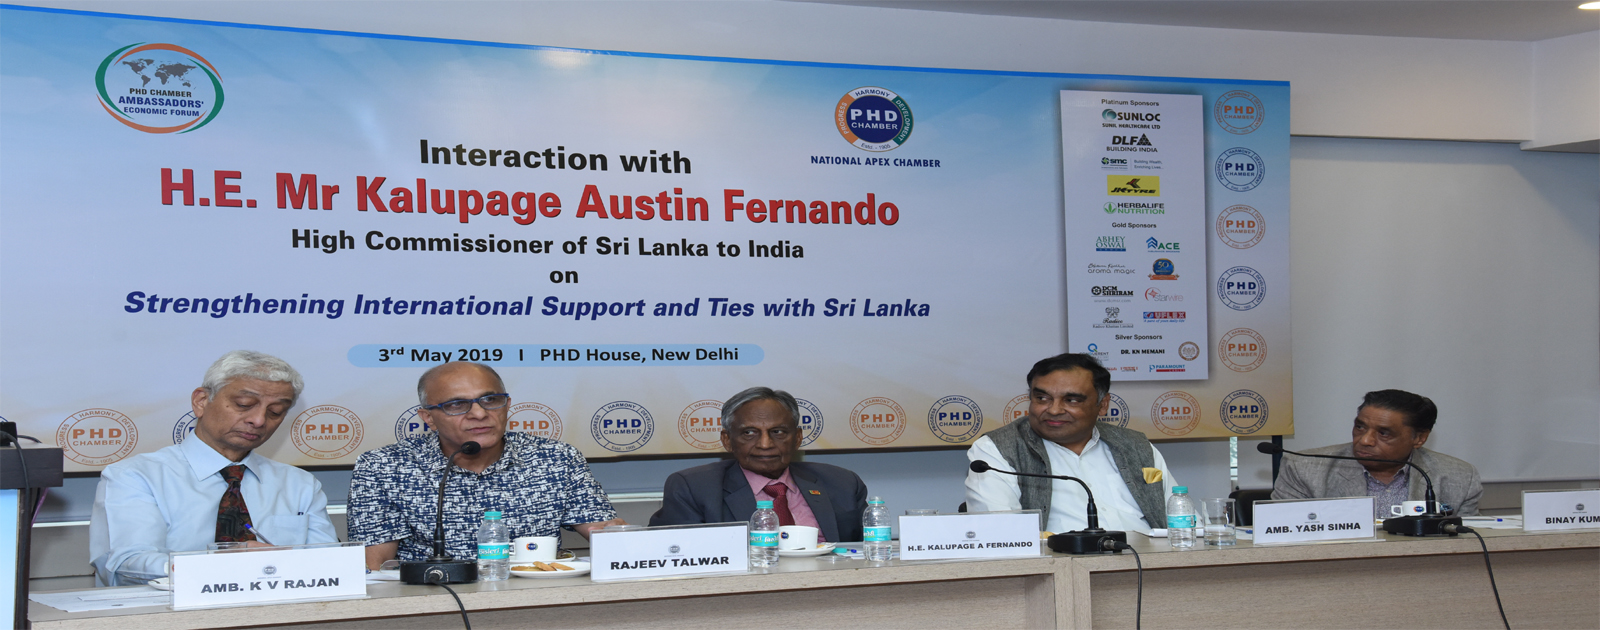 Interactive Session with H.E. Mr Kalupage Austin Fernando, High Commissioner of Sri Lanka to India